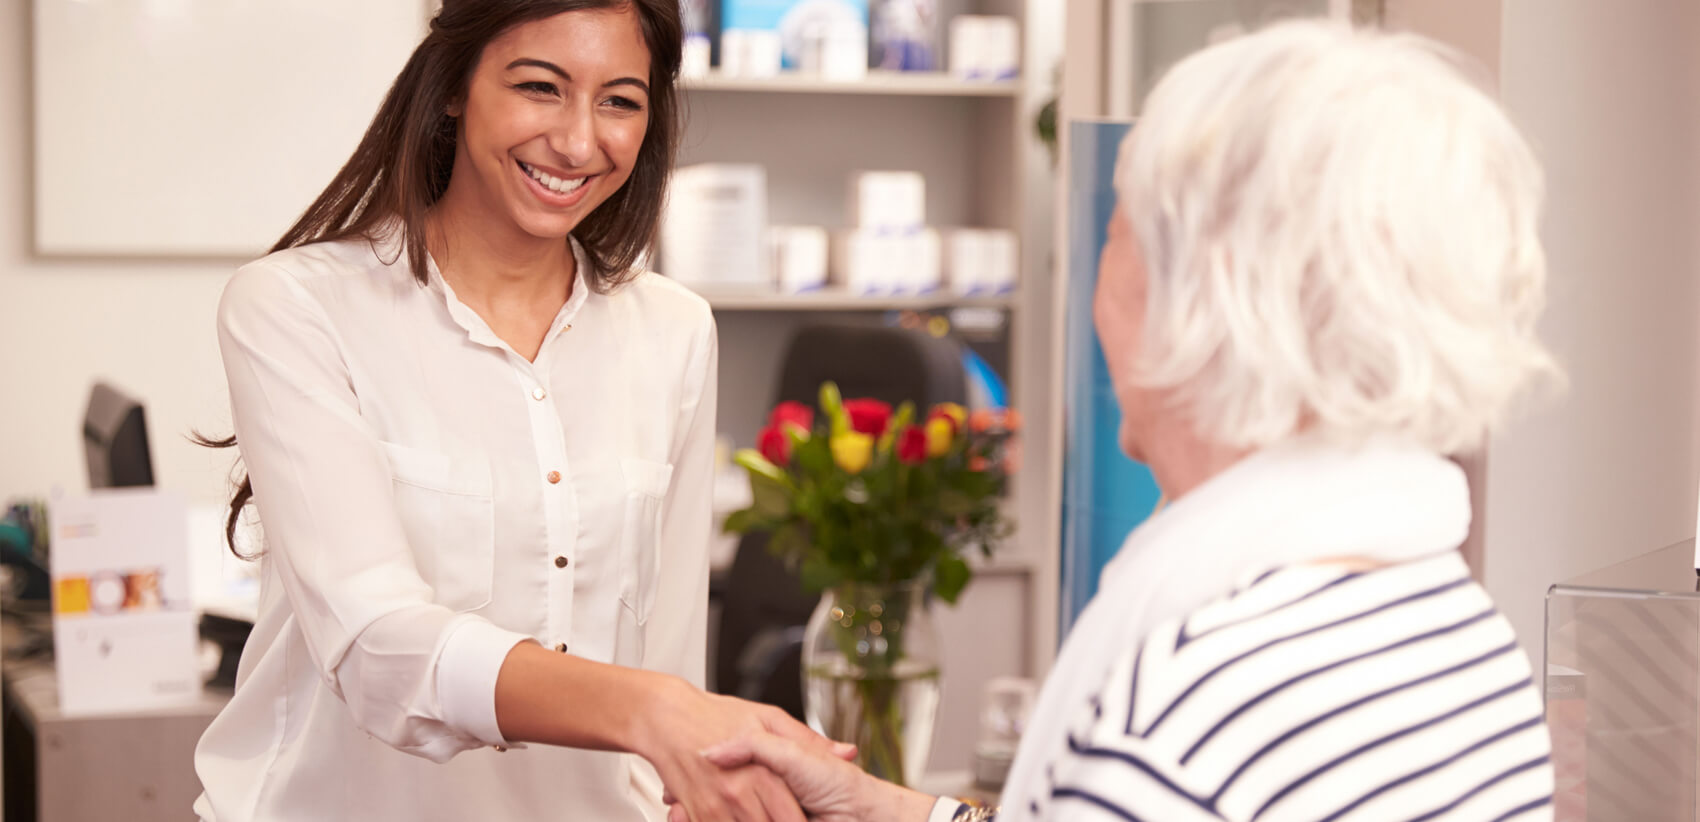 Healthcare management professional shaking hands with an elderly woman